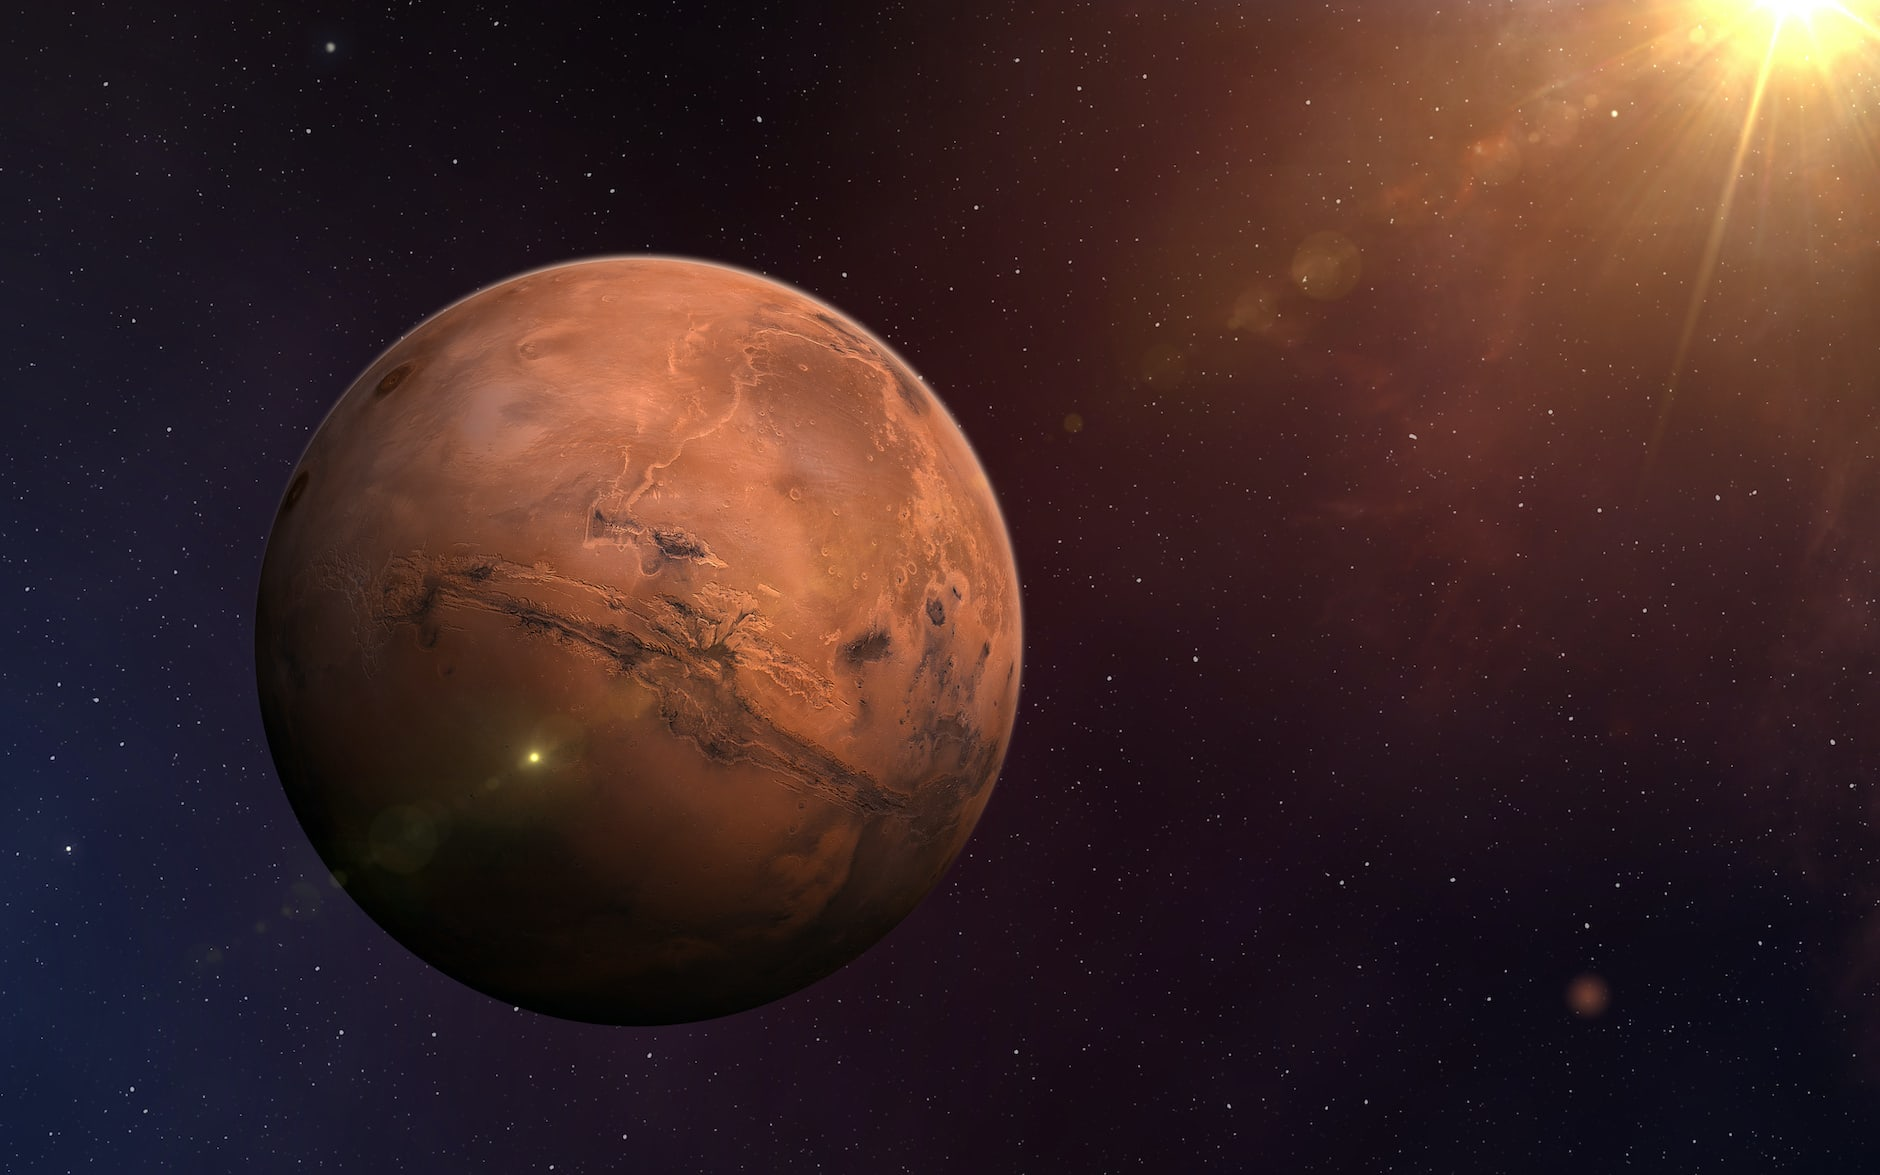 October 2020: Mars Won't Be This Close Until 2035image preview